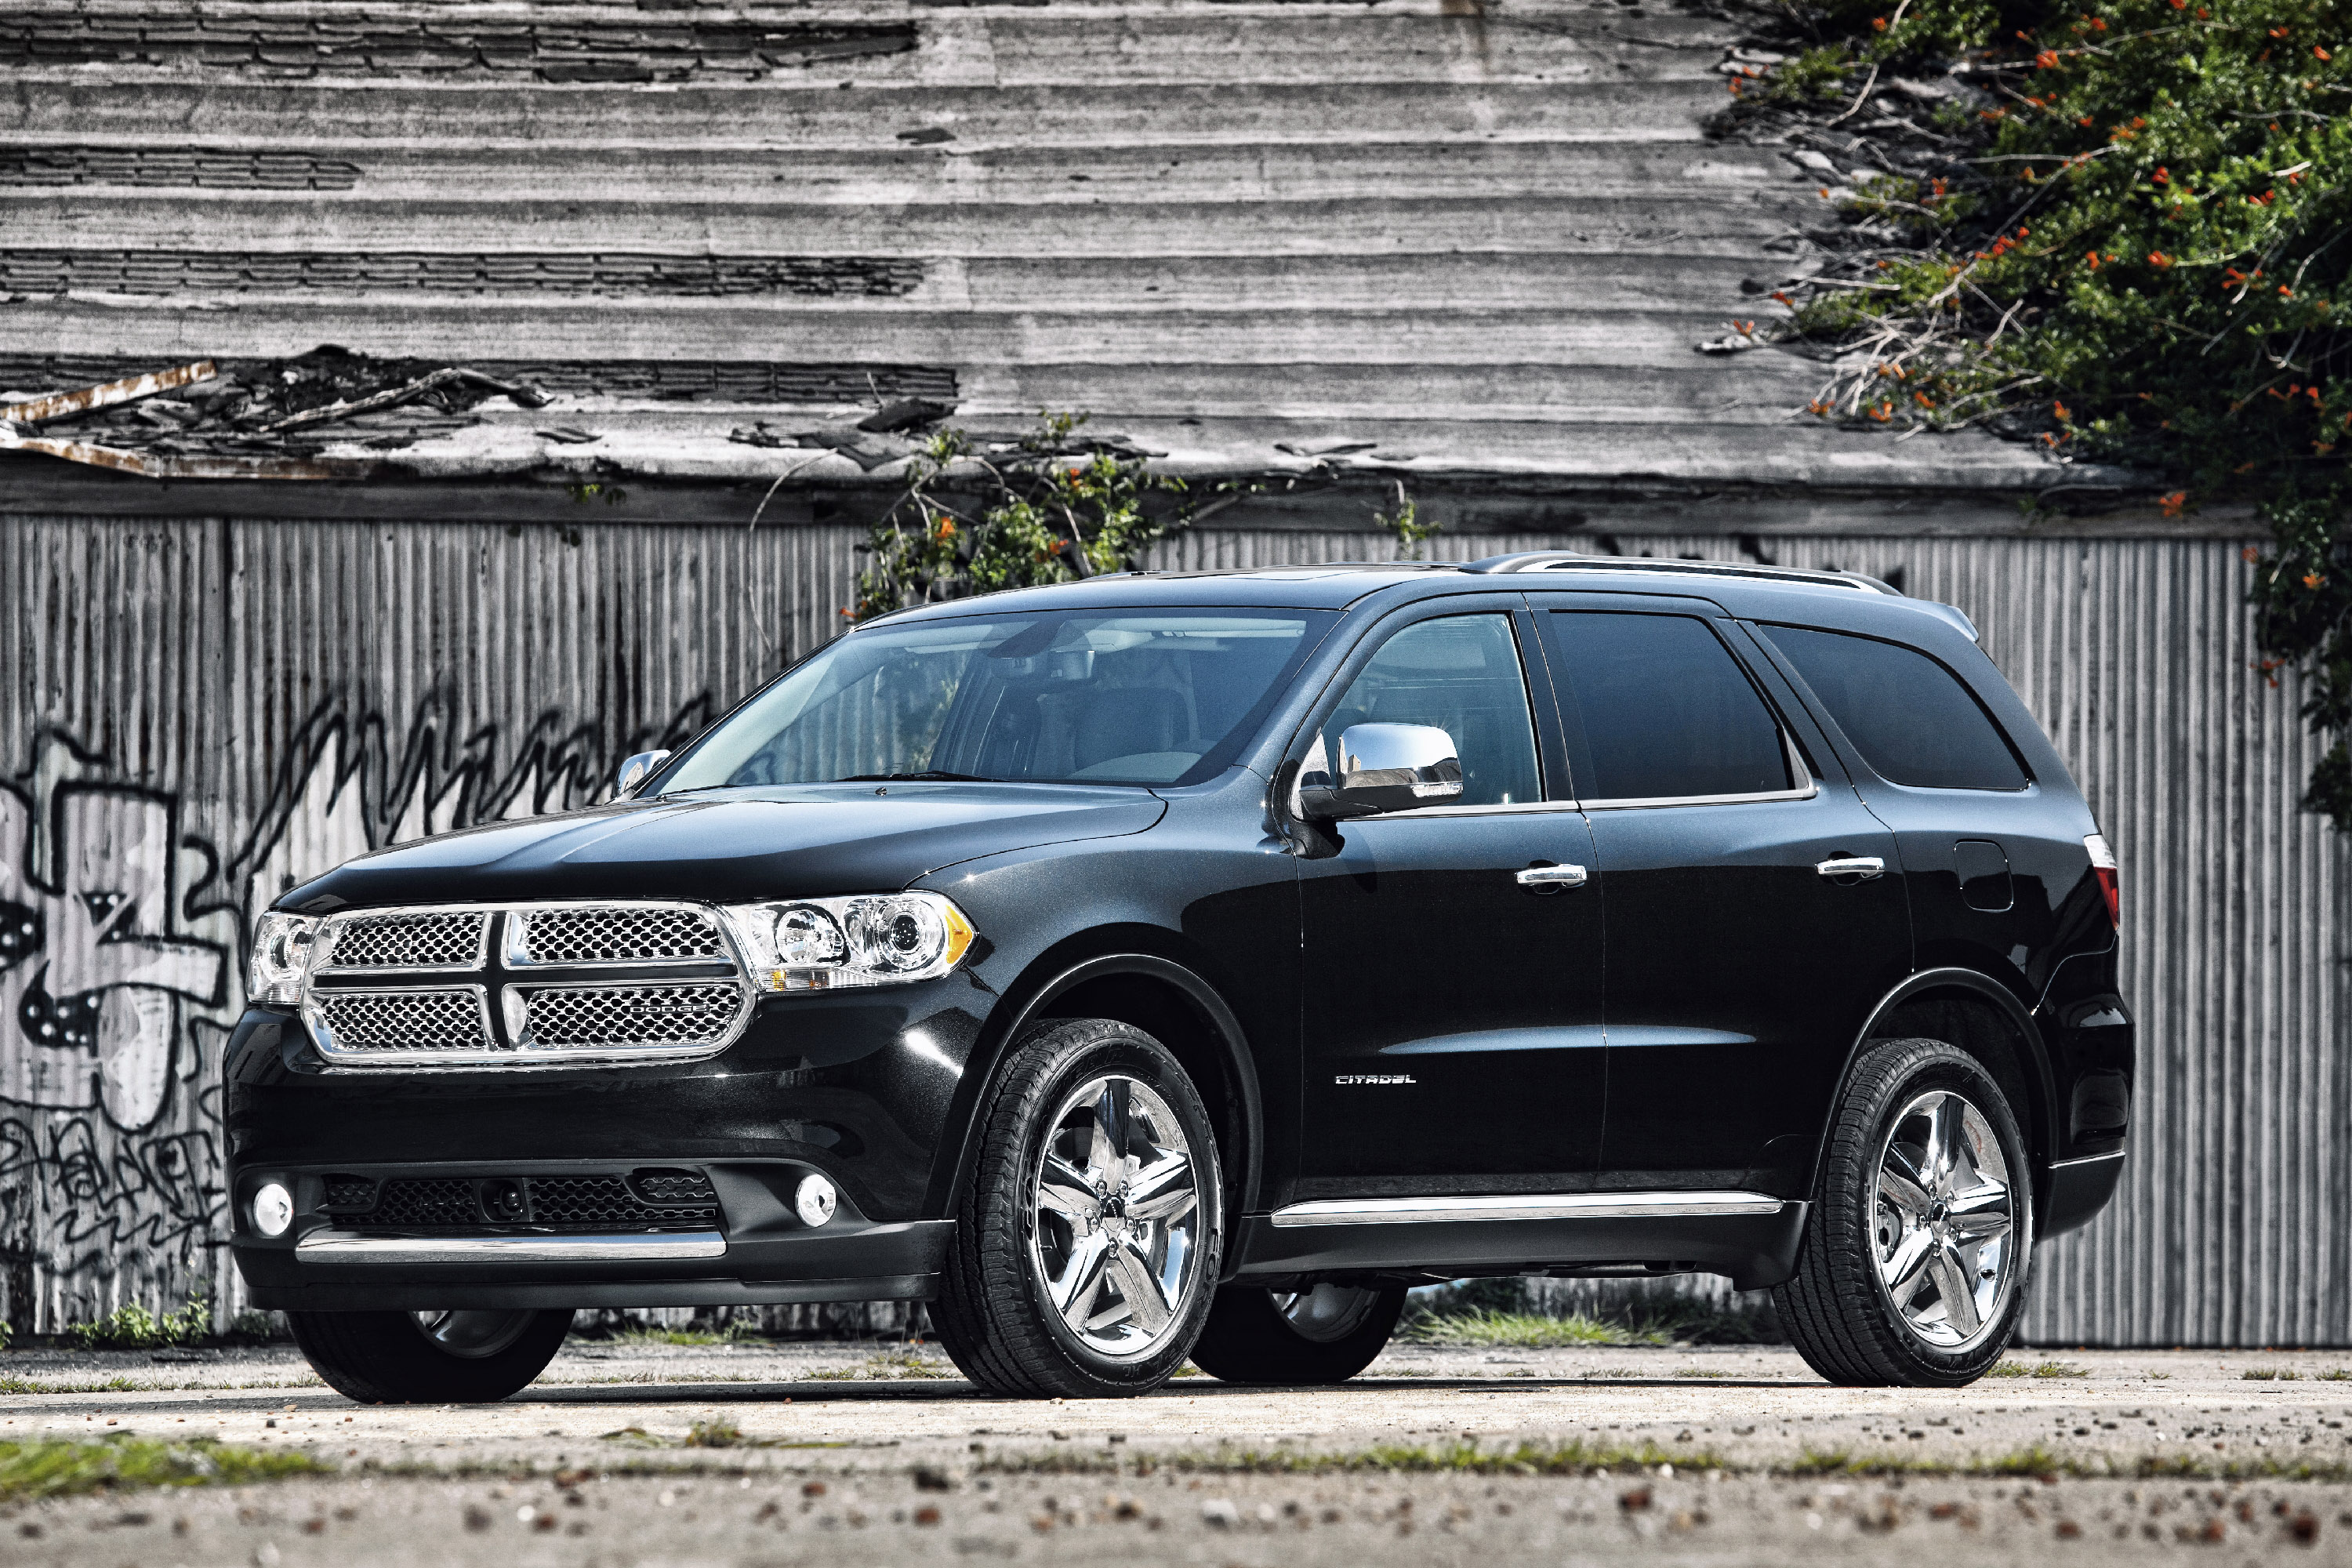 2011 dodge durango excellent choice for family vehicle. Black Bedroom Furniture Sets. Home Design Ideas